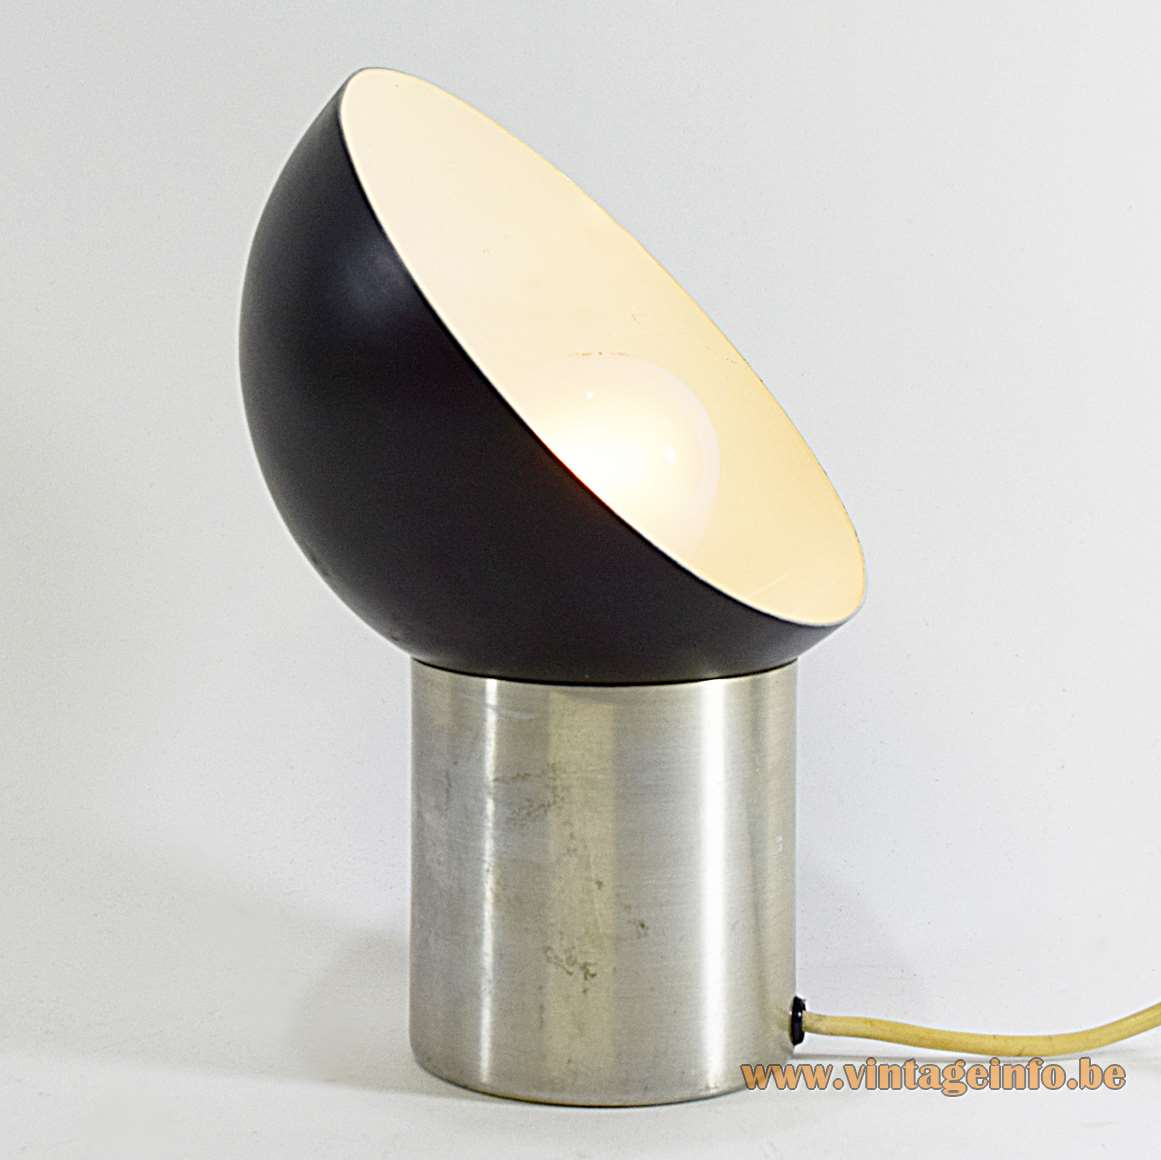 Half Globe Aluminium Display Table Lamp black and white painted lampshade tubular base 1960s 1970s MCM